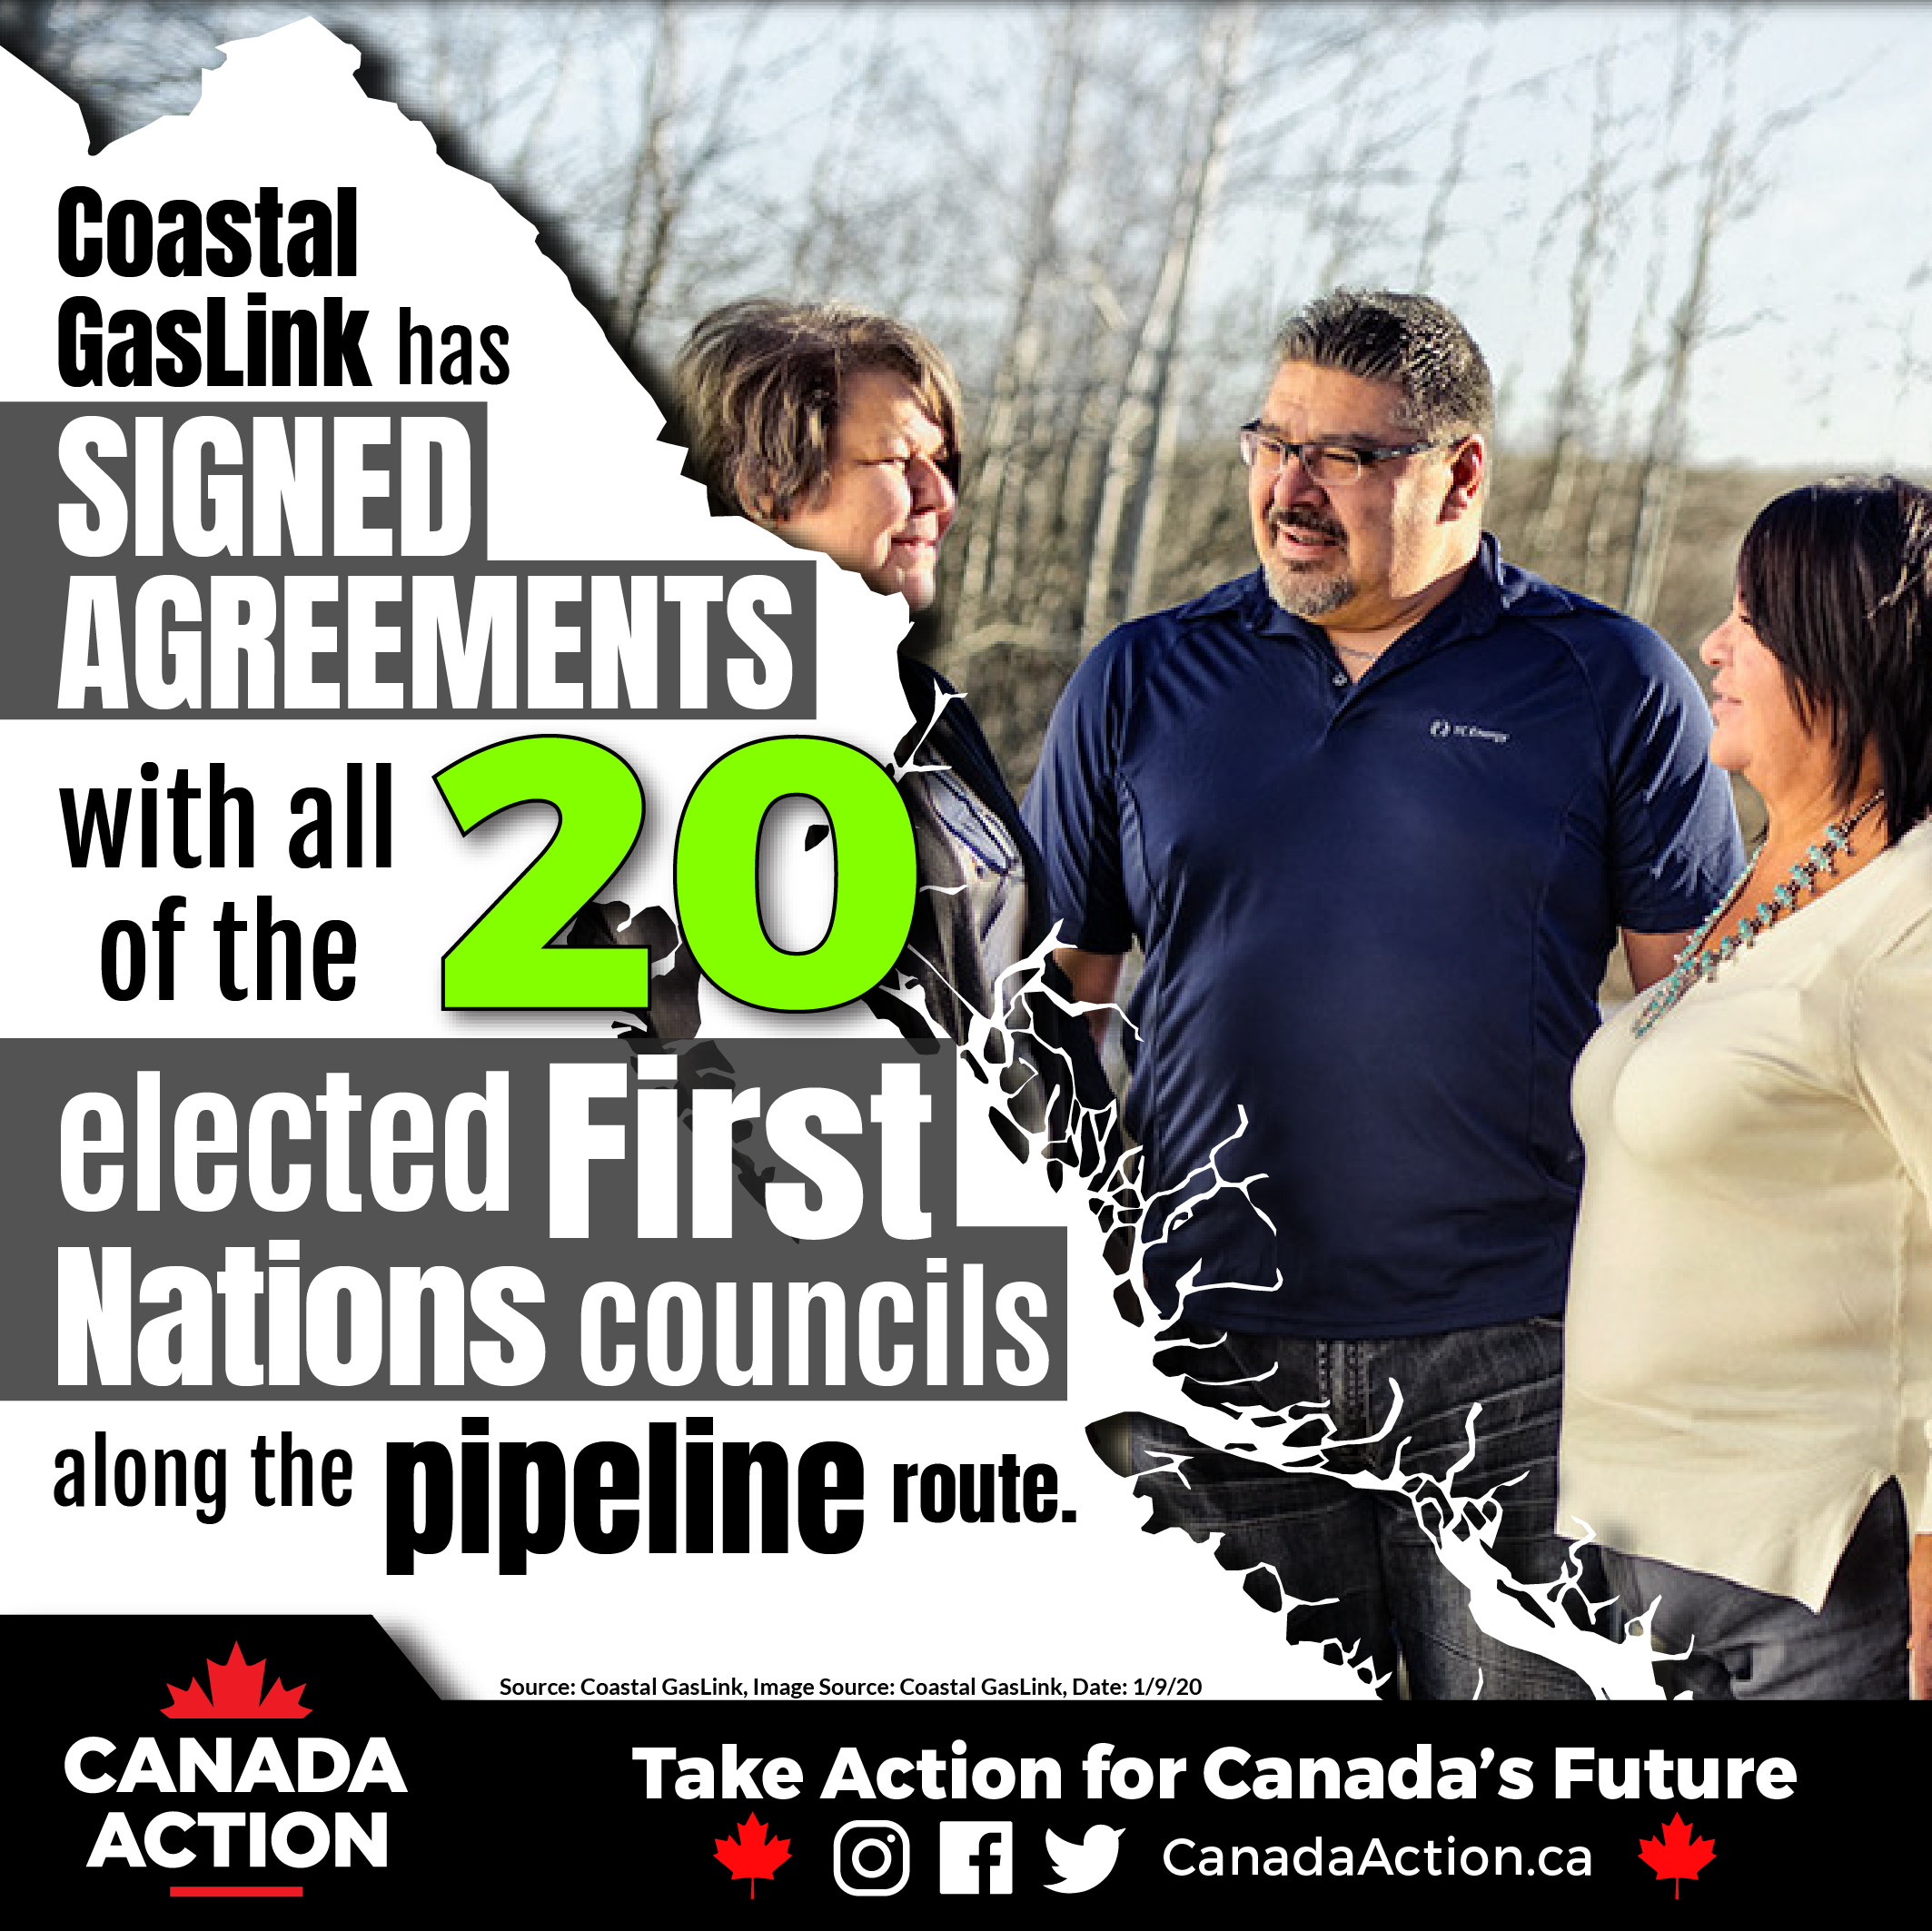 All 20 First Nations Along Coastal GasLink Pipeline Route Support Project